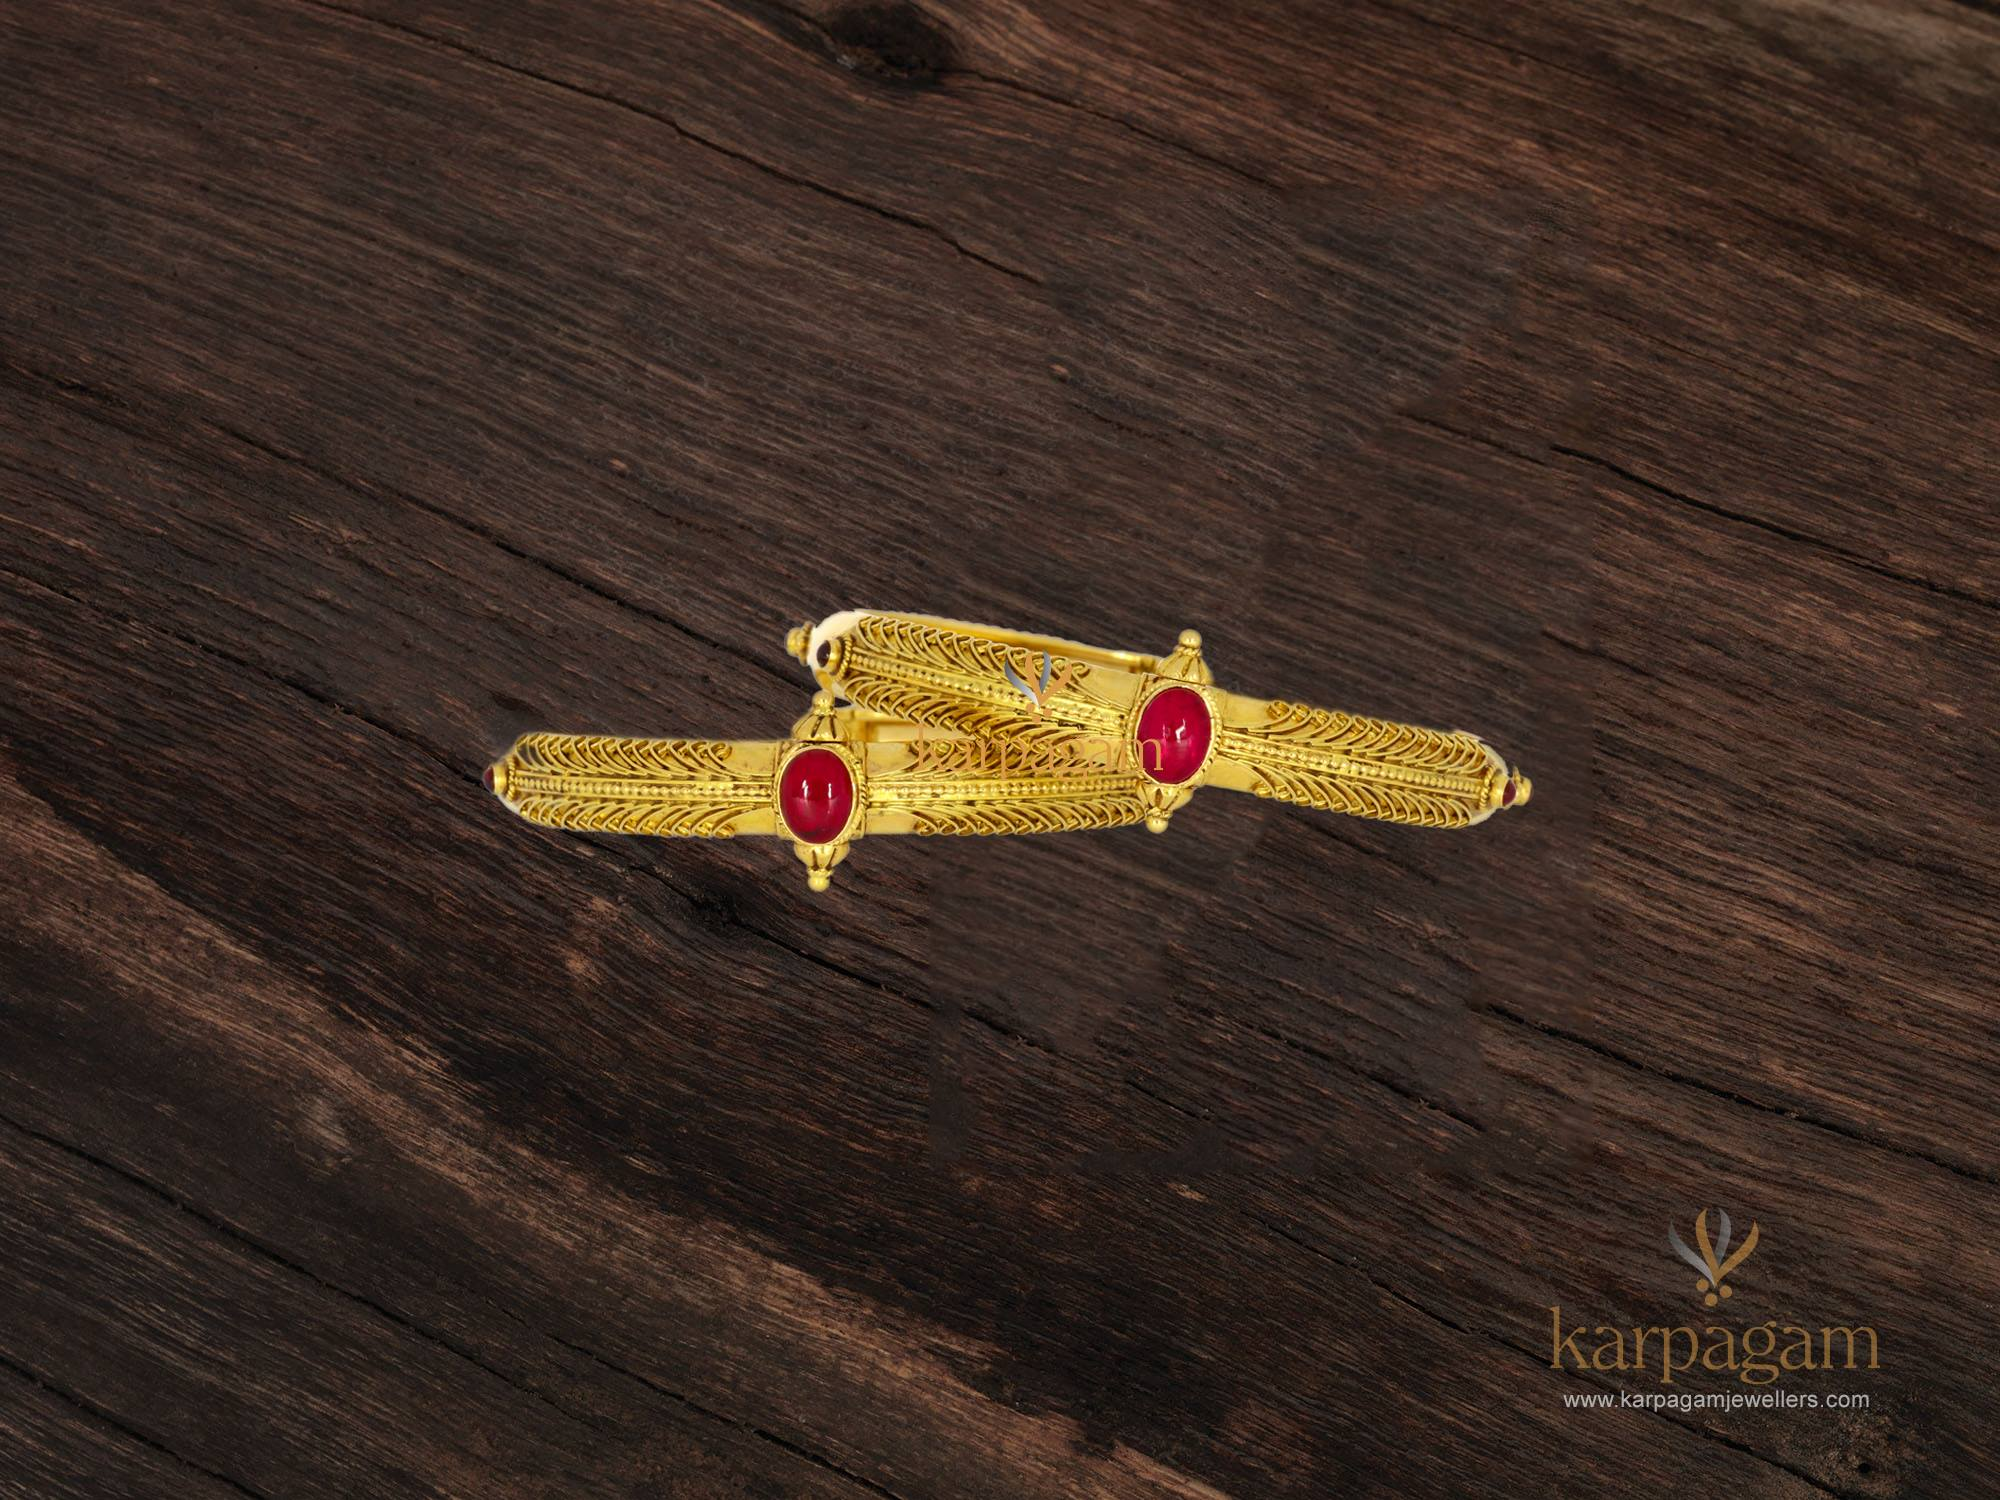 gold kada collection from karpagam jewellers 1